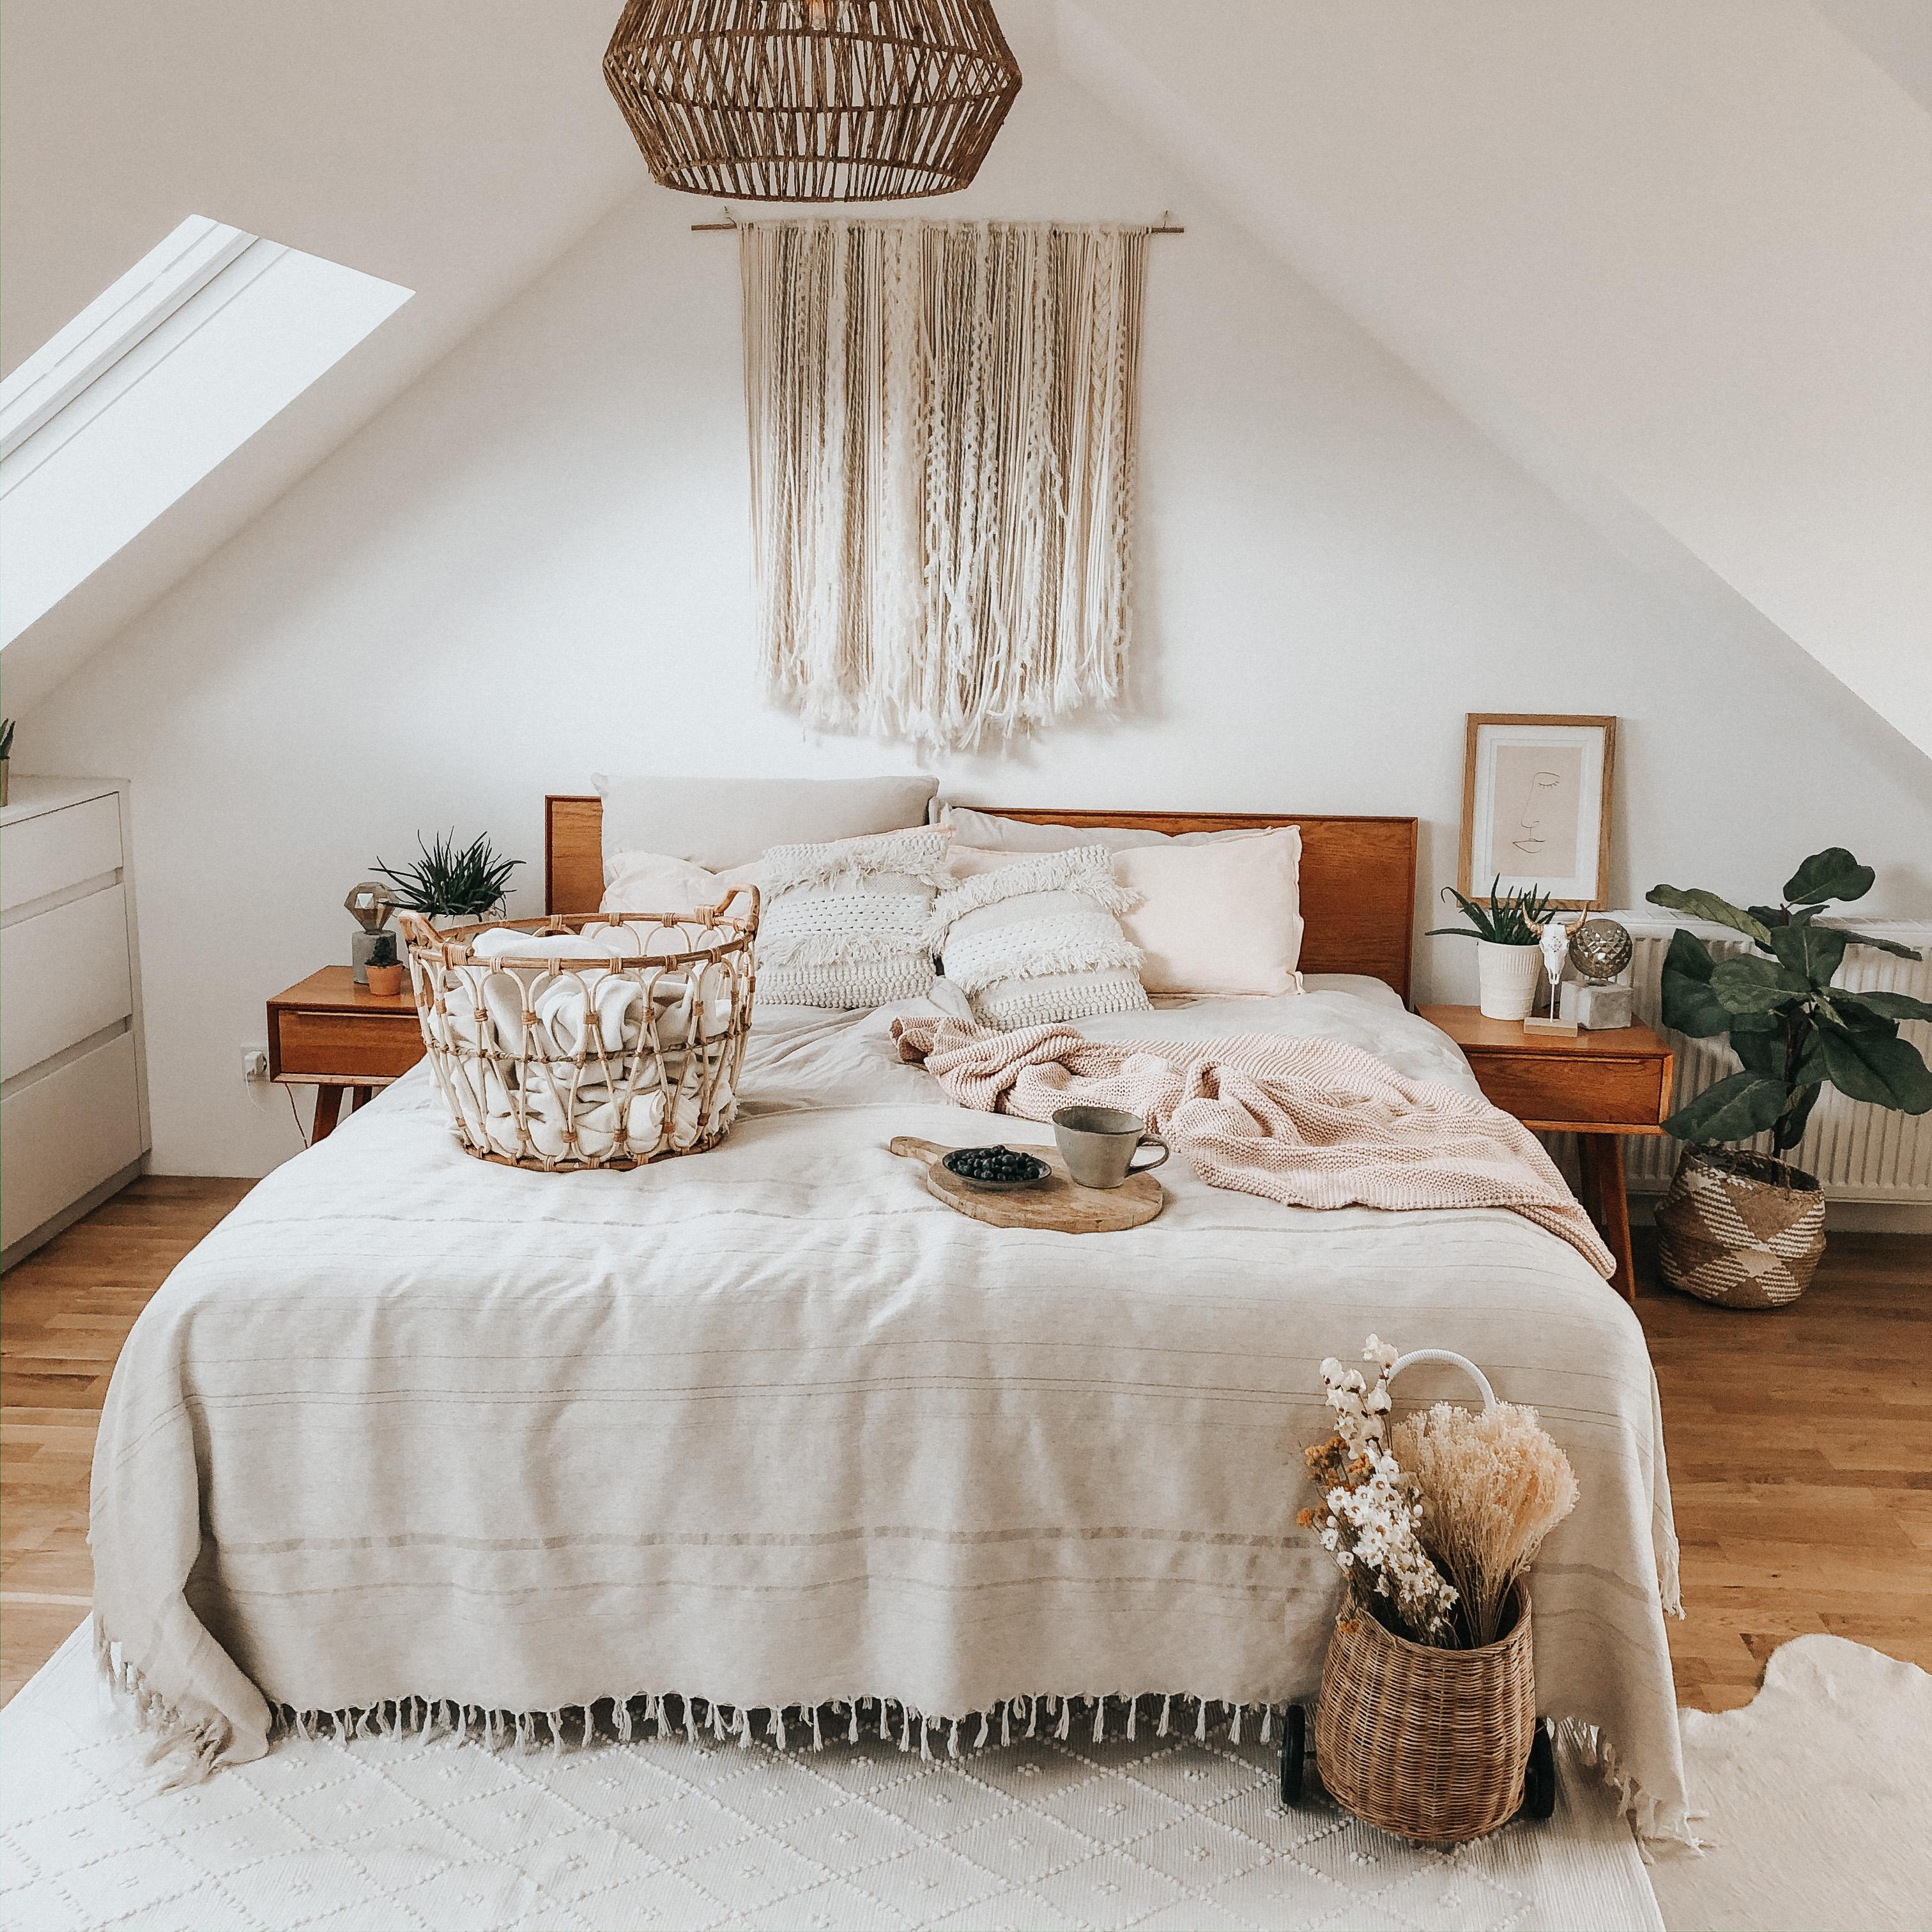 #placetobe #schlafzimmer #bedroom #dachgeschoss #bohovibes #boholiving #bohohome #bed #couchliebt